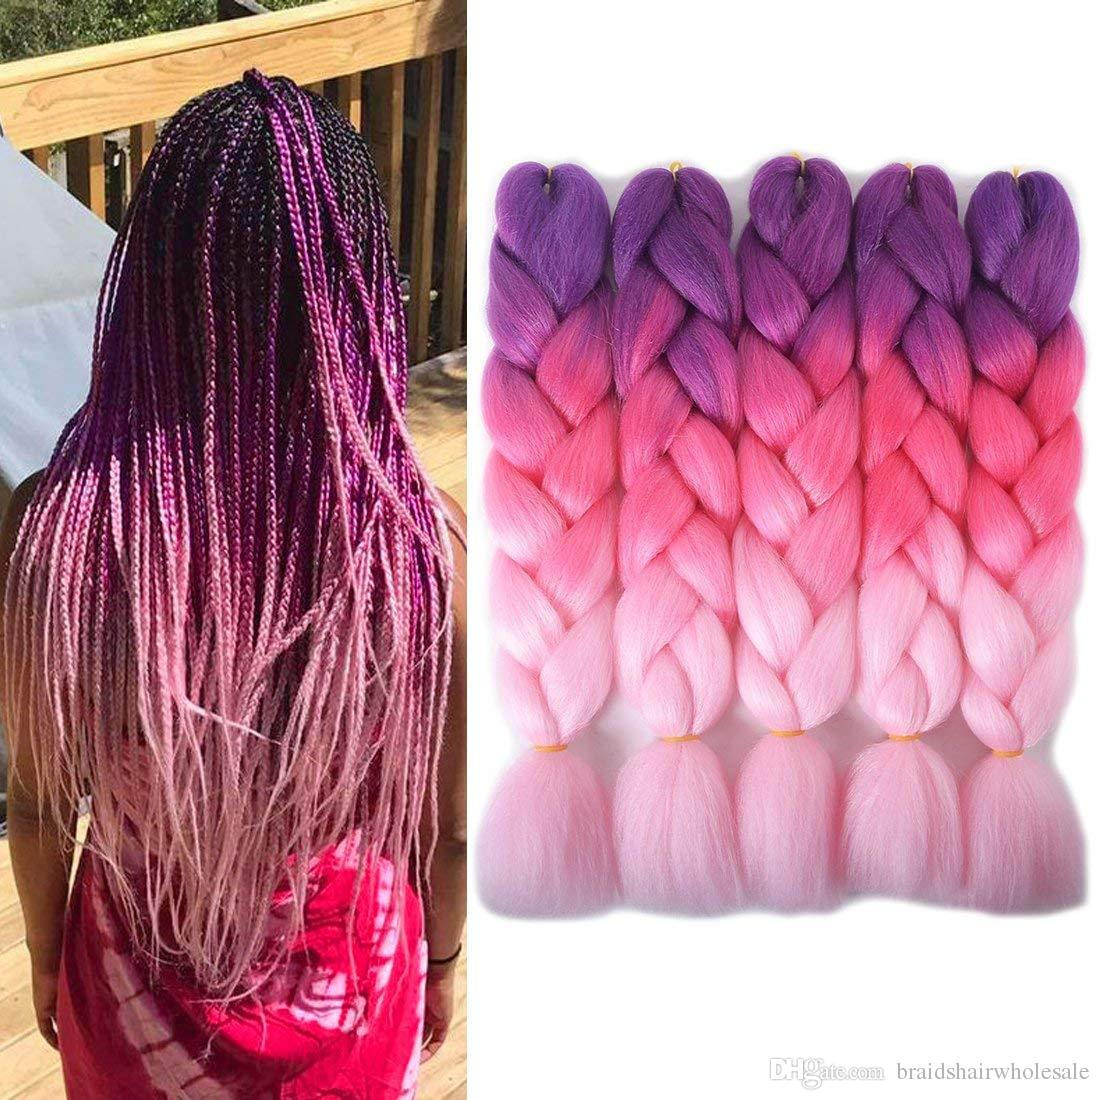 Kanekalon Synthetic braiding hair 24inch 100g Ombre Three tone color jumbo braid hair extensions 60 colors Optional Cheap Xpression Braiding